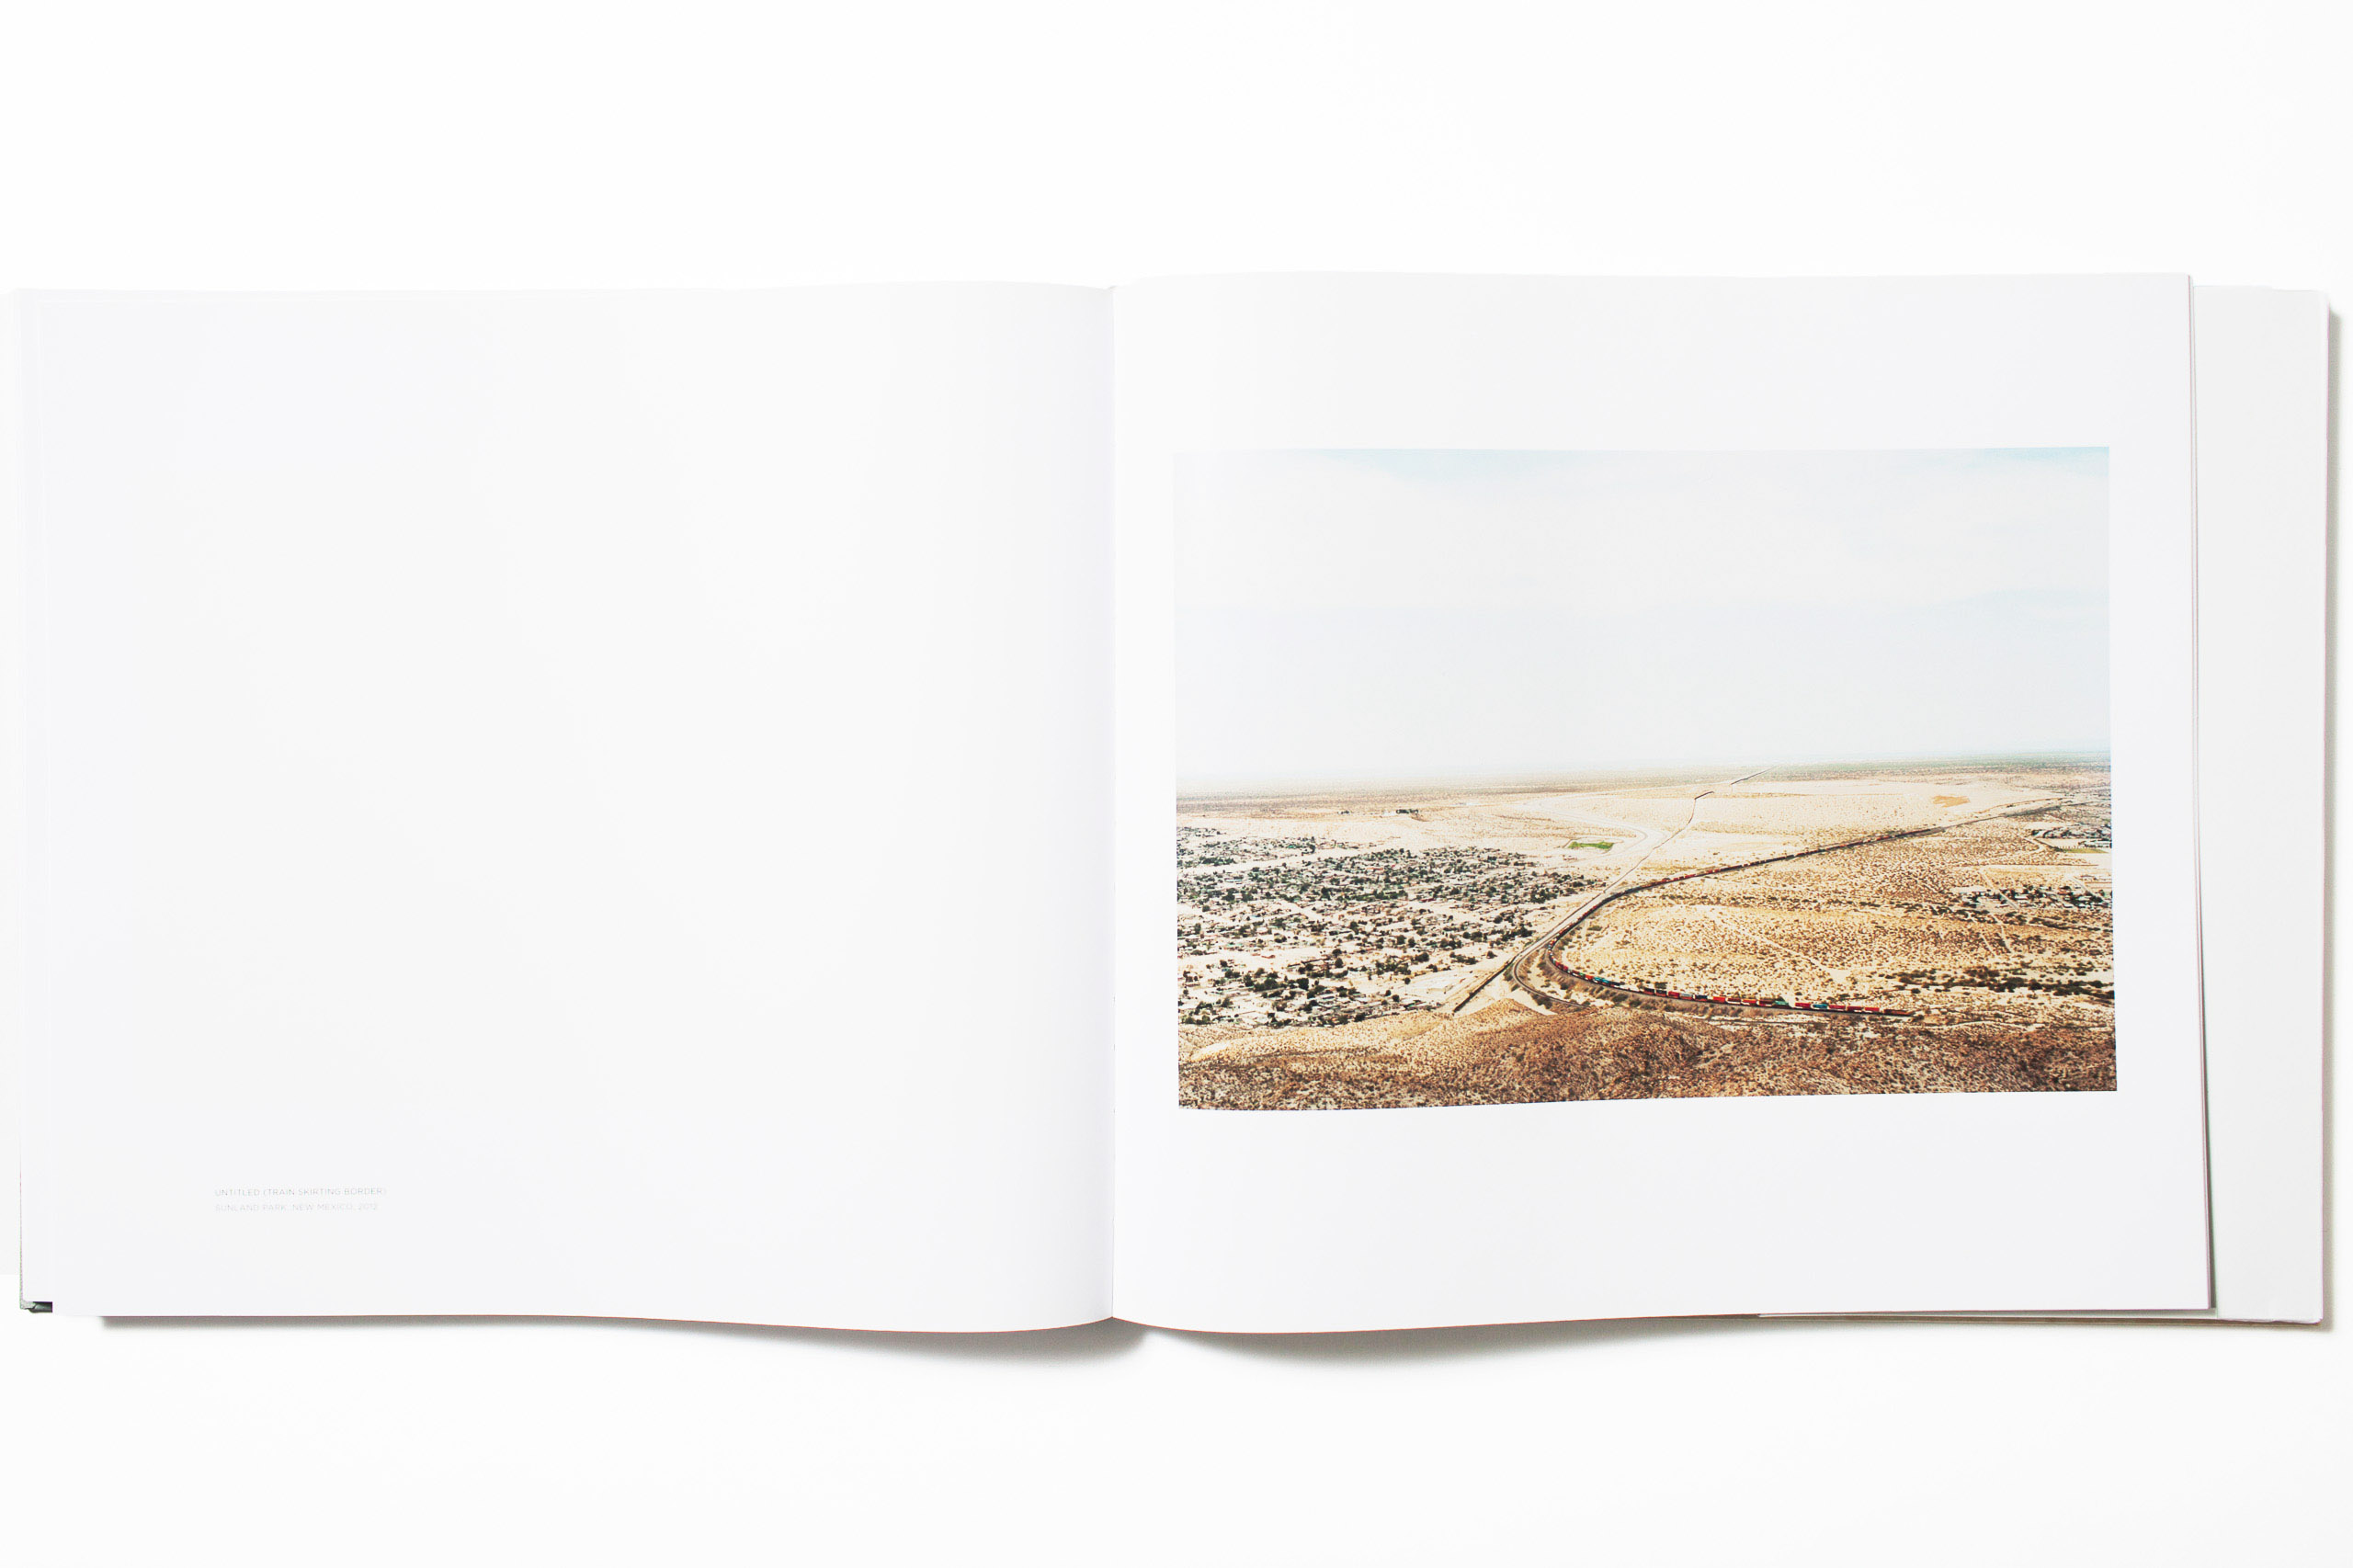 """""""Even when it comes to photo books I prefer small books— like note books and paperback novels, pocket sized—portable and unostentatious. This year there were several books that I responded to (Thomas Roma and Giancarlo T. Roma's <i>Waters of Our Time</i>,  Christoph Bangert's <i>War Porn</i> and Paul Graham <i>Does Yellow Run Forever?</i>) not only for their photographic content, but through their carefully considered design, and intimate size. But after much consideration, I chose a book on a larger scale (one I wouldn't mind if it were even bigger) that presents its content in an appropriately clean and modern manner.                                   Victoria Sambunaris' <i>Taxonomy of a Landscape</i> is a dedicated exploration of, and response to, the American Landscape. A fifteen year journey traversing the country, often for months at a time, that channels the intellectual and journalistic spirit of John McPhee's writings, the discovery of Robert Frank's Americans and the great American photographic traditions of the U.S. Geological Survey in the late 1800s, the Farm Security Administration (FSA) of the 1940s. and the New Topographics movement. The photographic study includes national parks, industrial parks and a 2,000 mile stretch along the U.S./ Mexican border—each documented from Sambunaris' unique and impeccable perspective. In the age of drones and digital photography, one woman traveling the country alone by car with a 5x7 wooden film camera, has delivered a book for the ages.""""                                                                      -Phil Bicker, Senior Photo Editor TIME."""